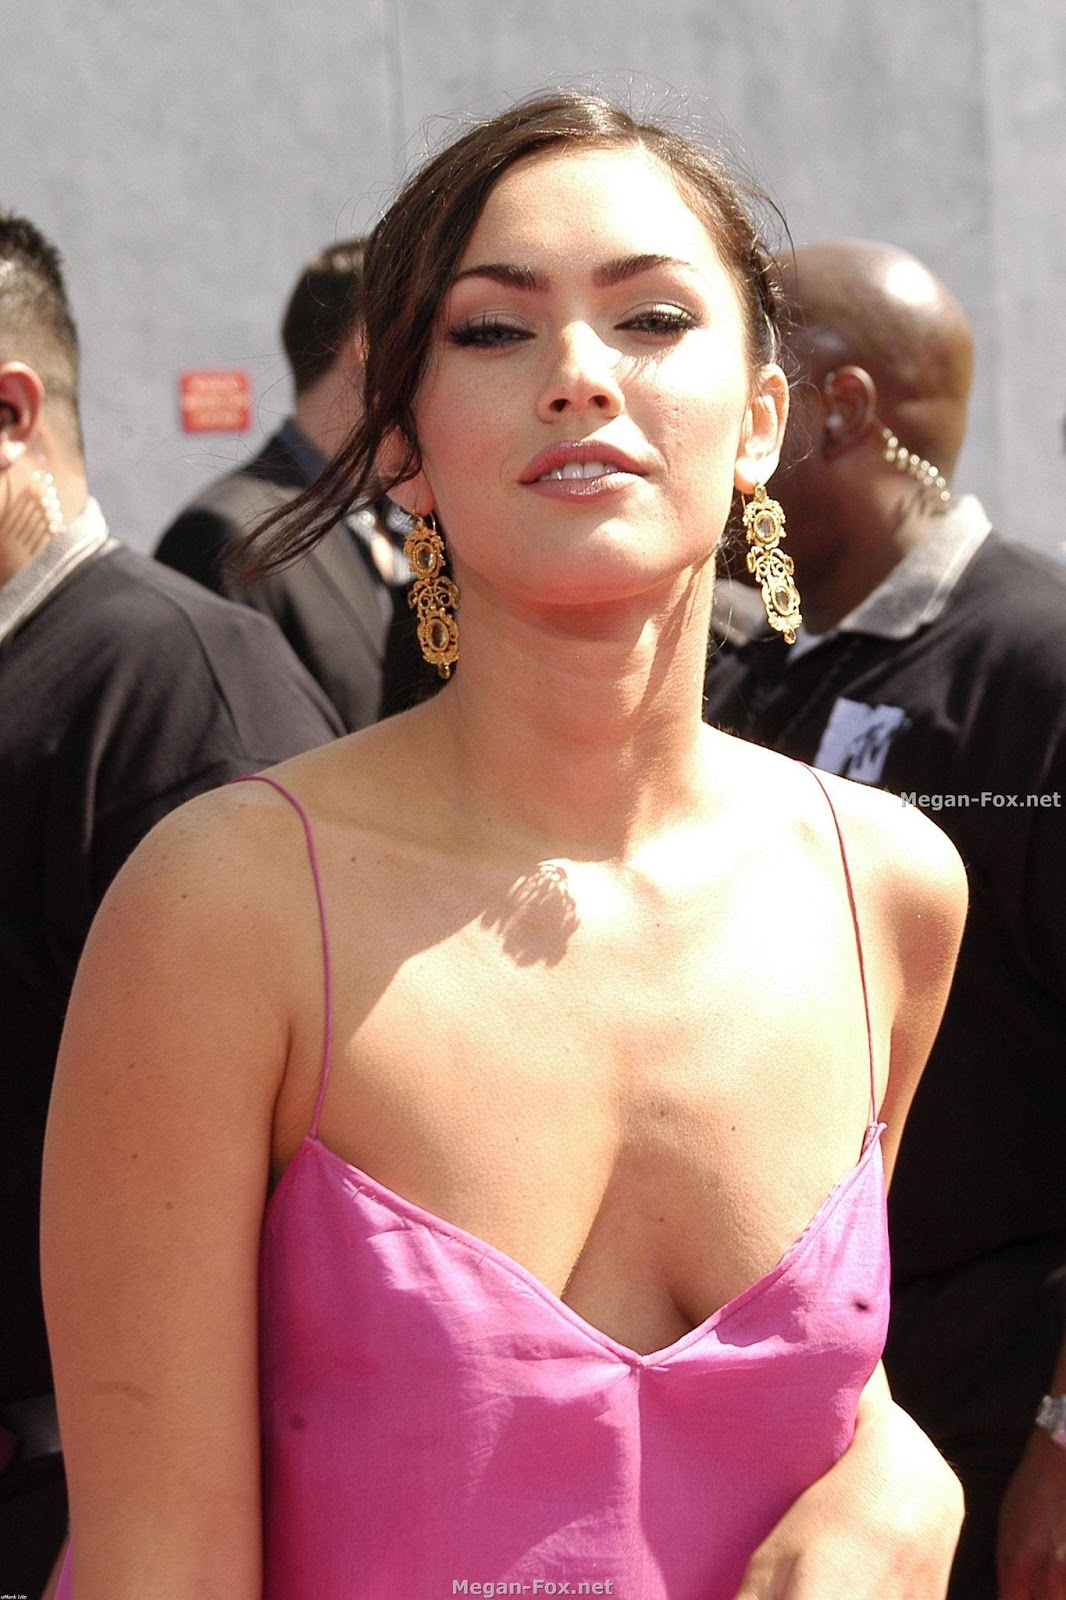 Megan fox boob pictures